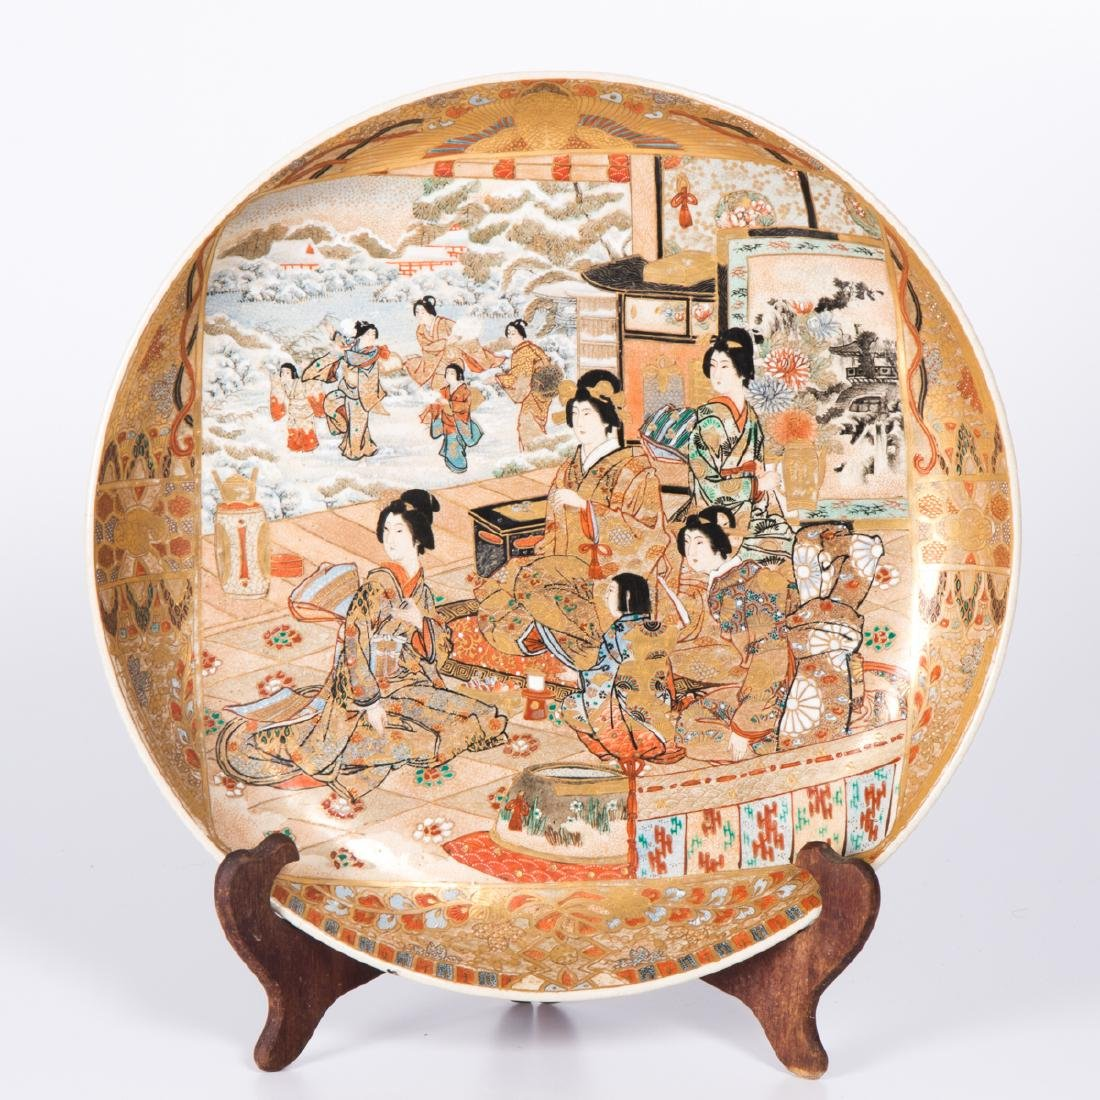 A Japanese Satsuma Porcelain Charger with Stand, 20th